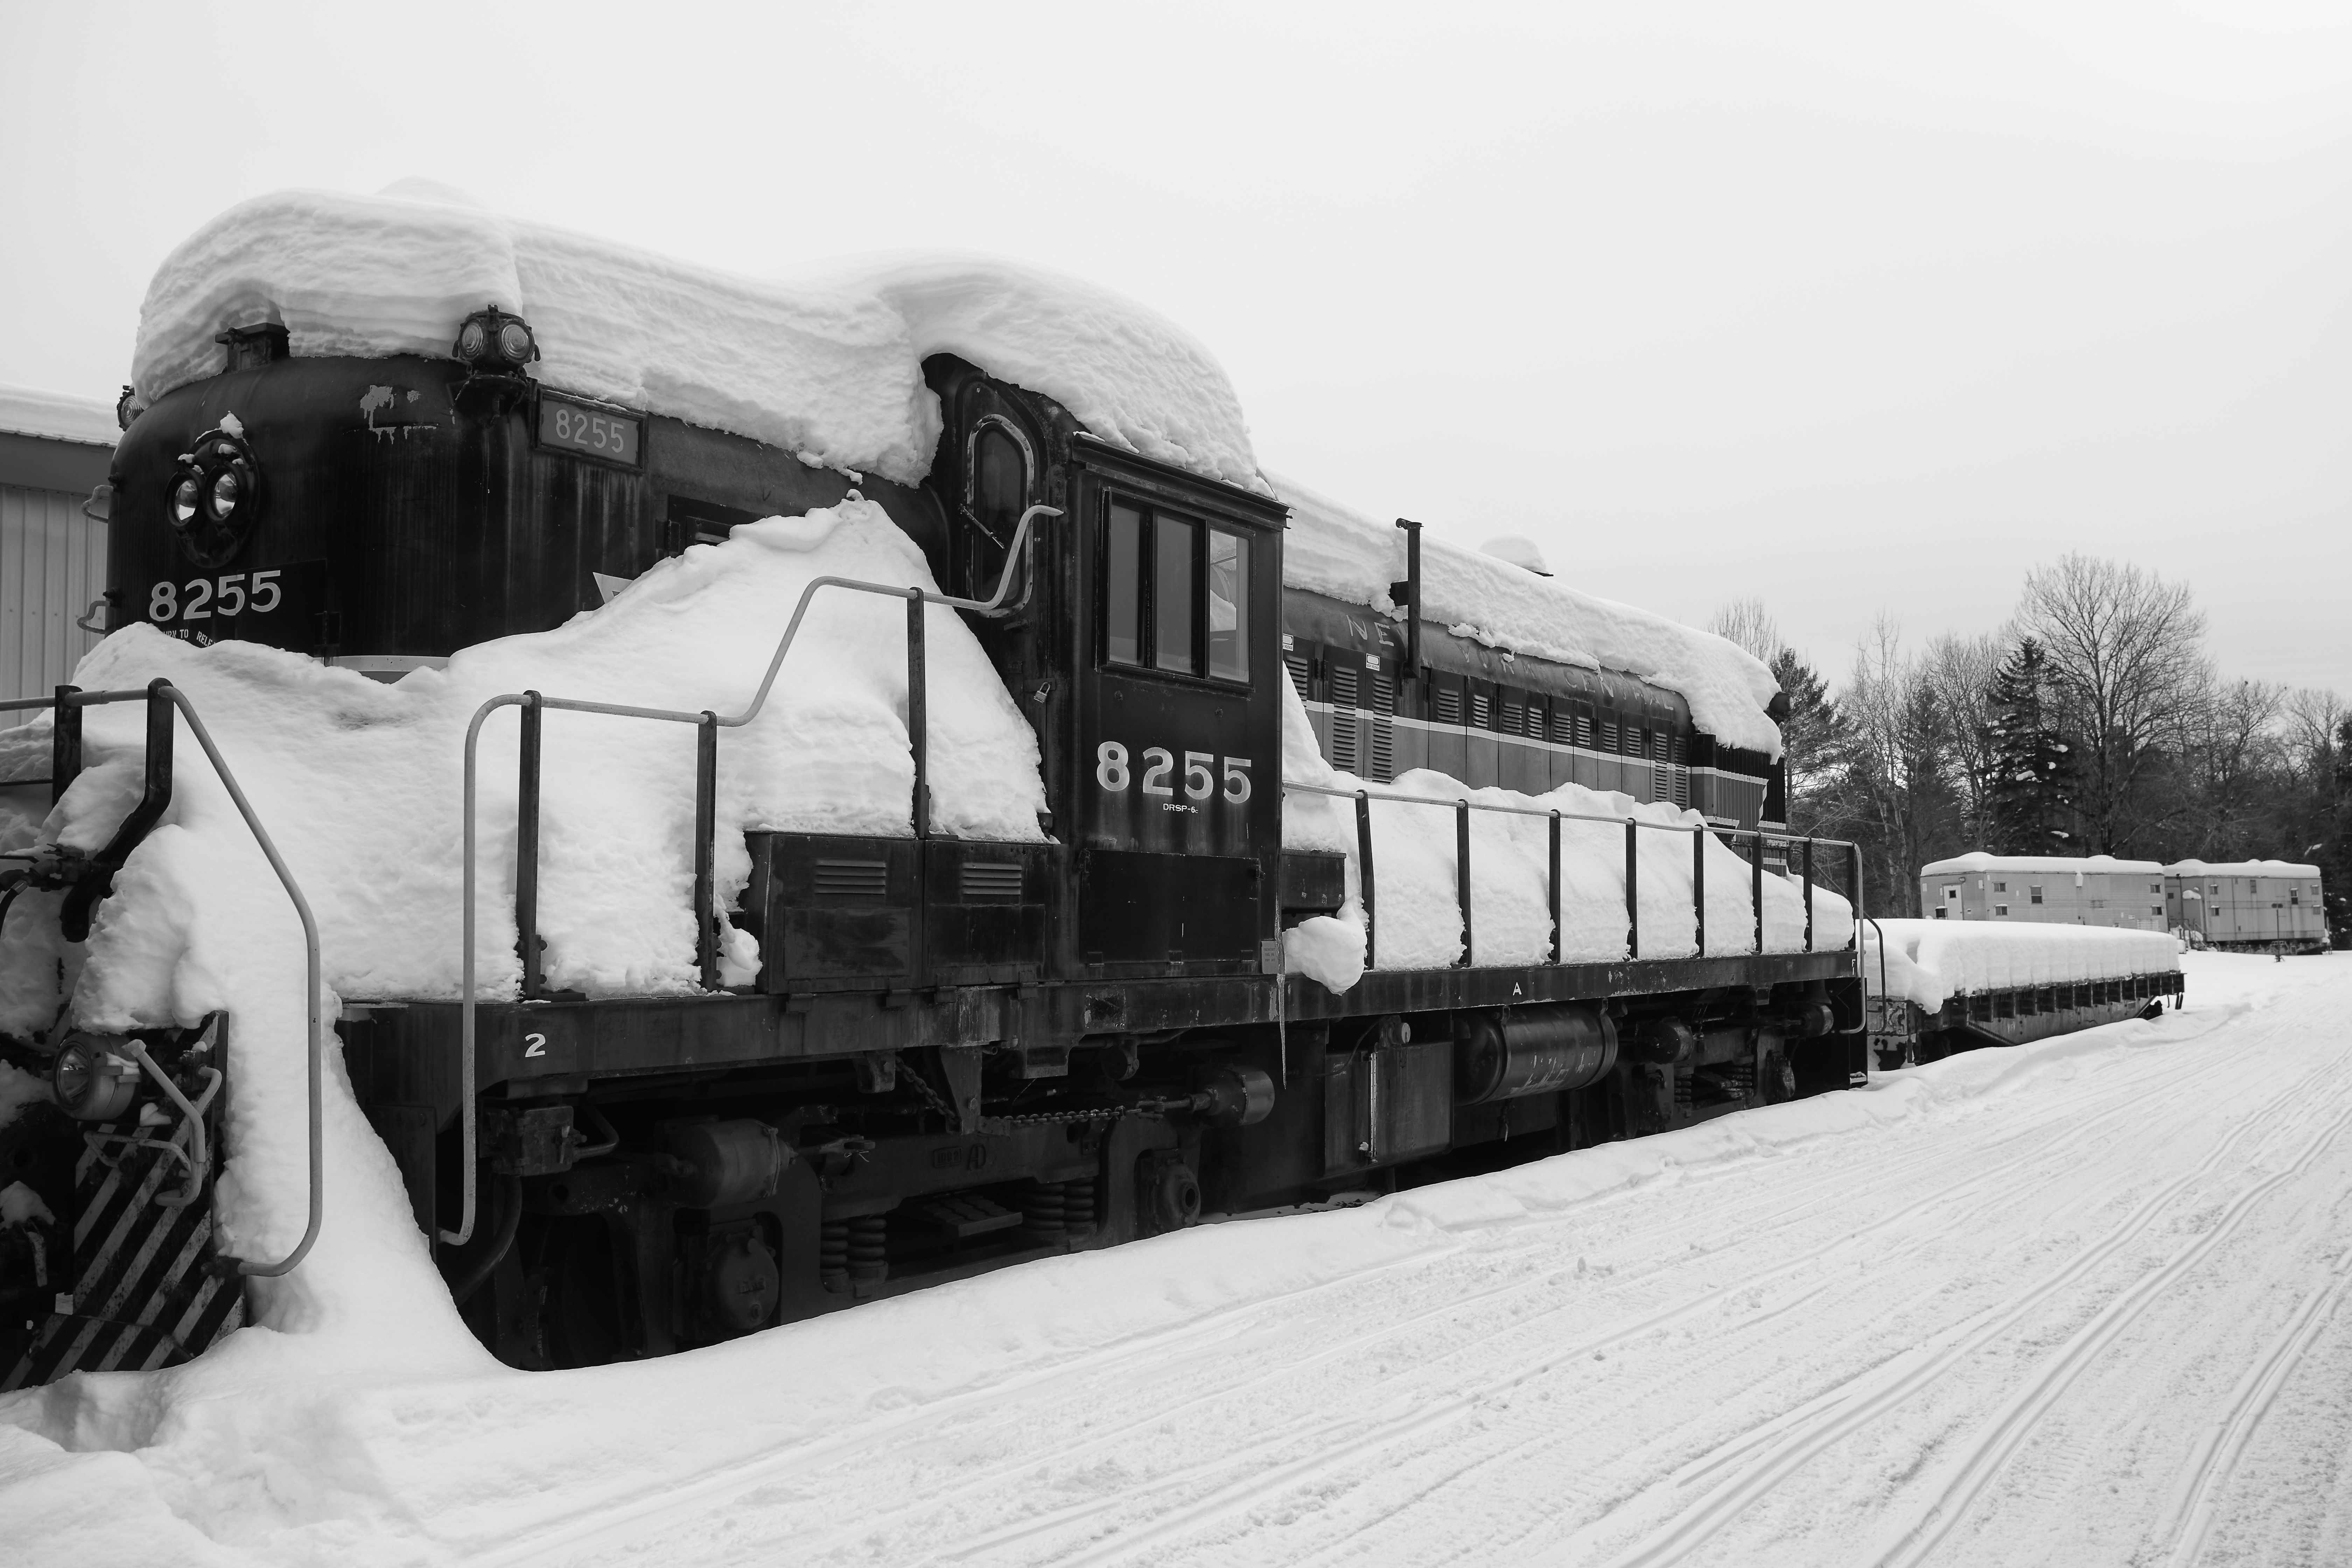 Black and white image of diesel locomotive covered in snow.